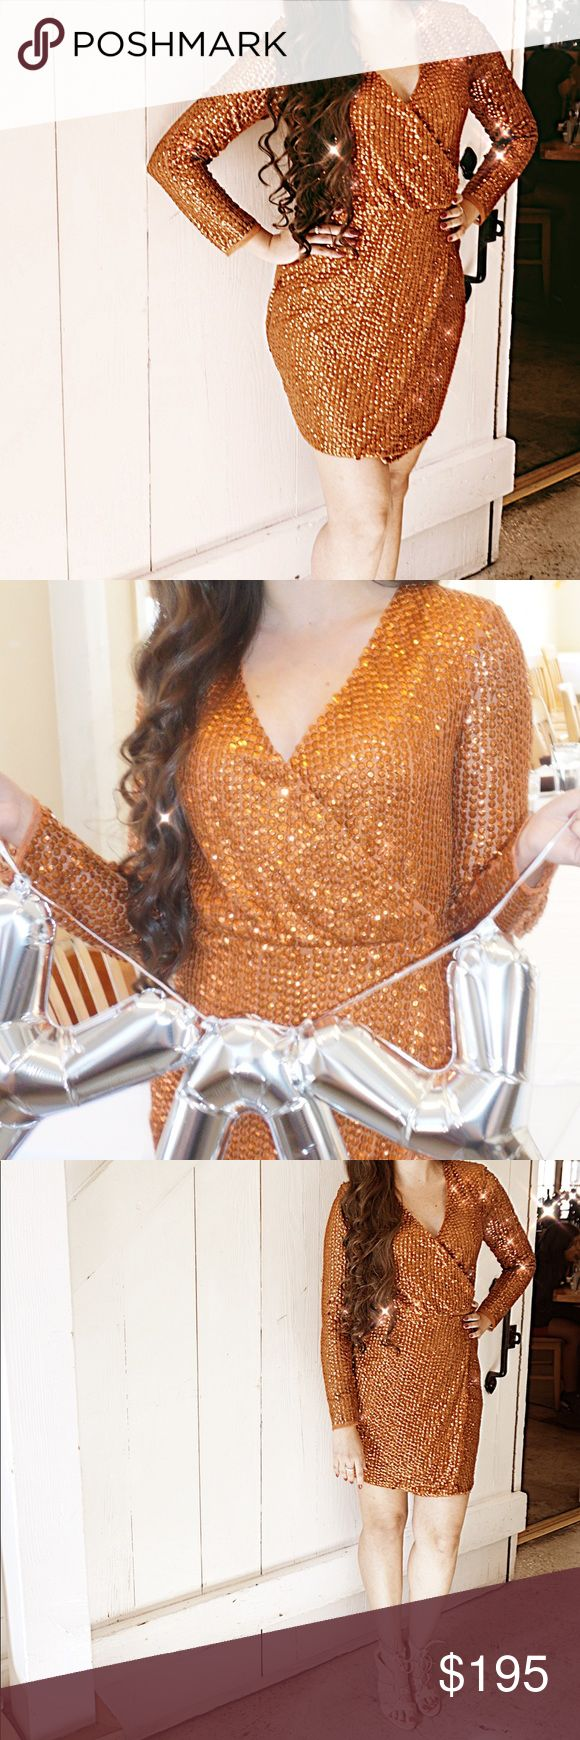 Glitzy Missguided Dress This beautiful Missguided Peace + Love Copper Sequin Wrap Mini Dress was only worn once for a couple of hours. Absolutely beautiful and shines in every photo. ‼️NO TRADES‼️ Missguided Dresses Mini